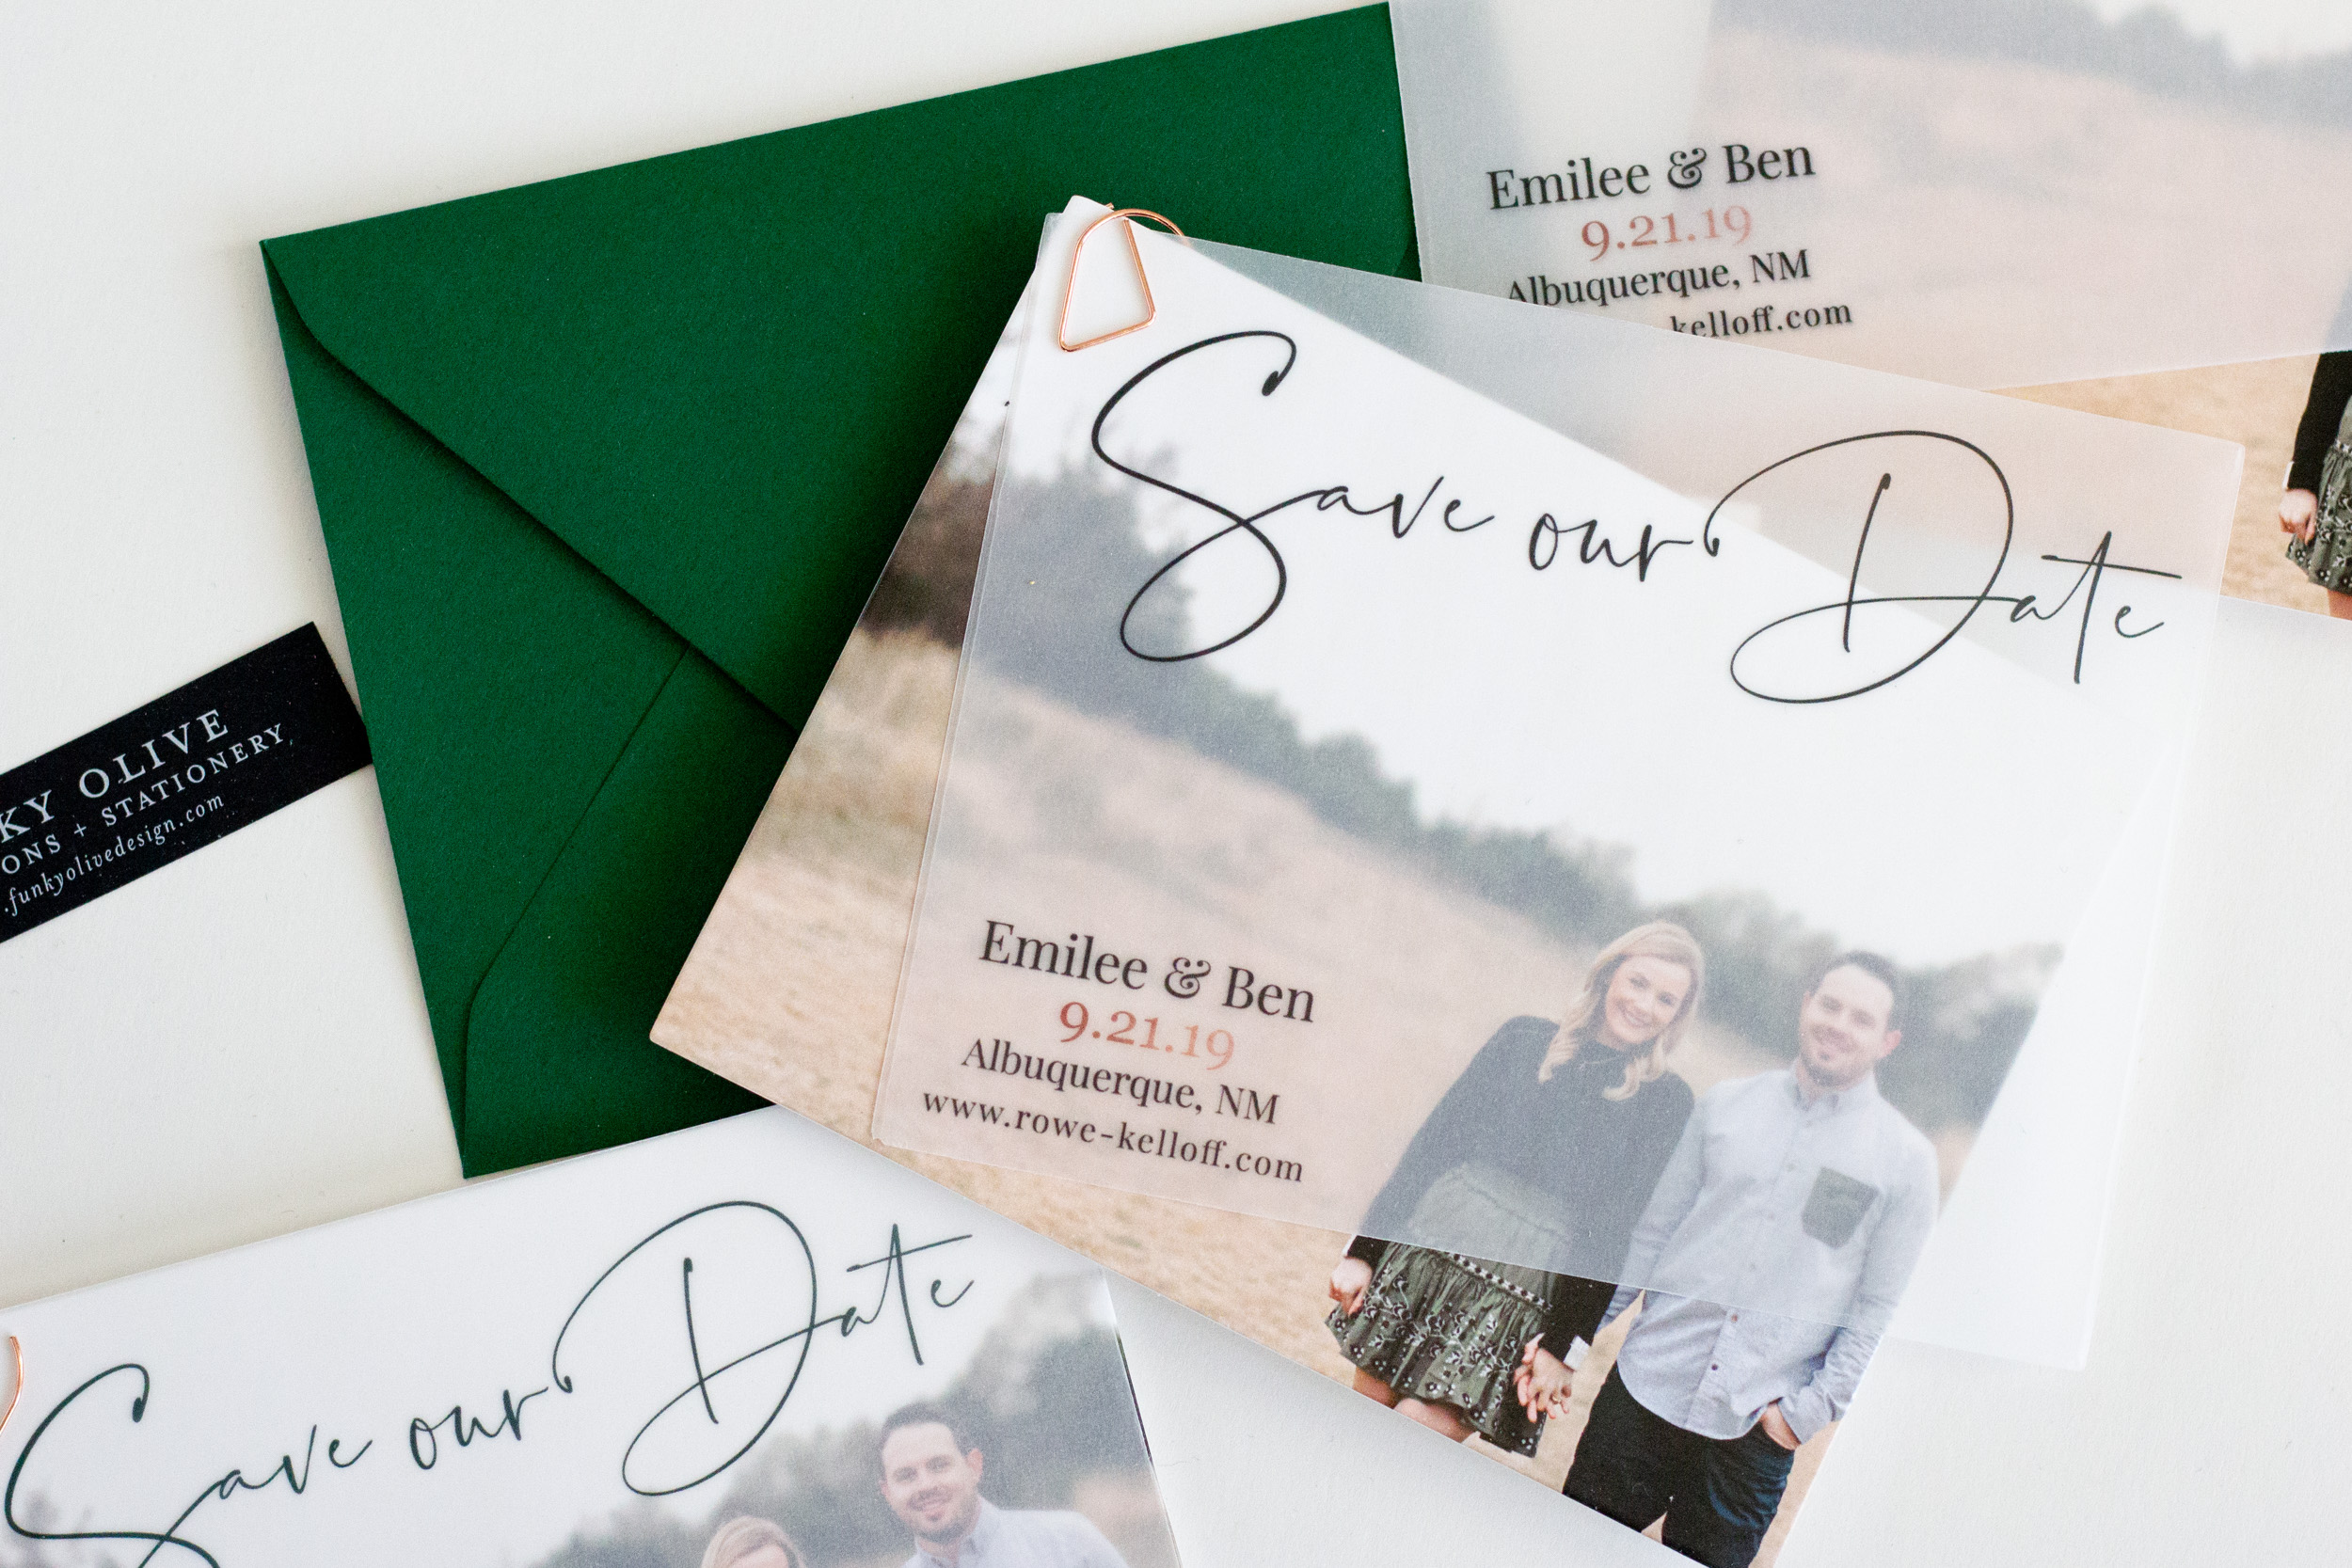 Emilee and Ben chose a vellum overlay to accompany the sweetest engagement photo, held on with a super chic rose gold clip. Paired with a bold green envelope, these definitely top our charts and capture our hearts!